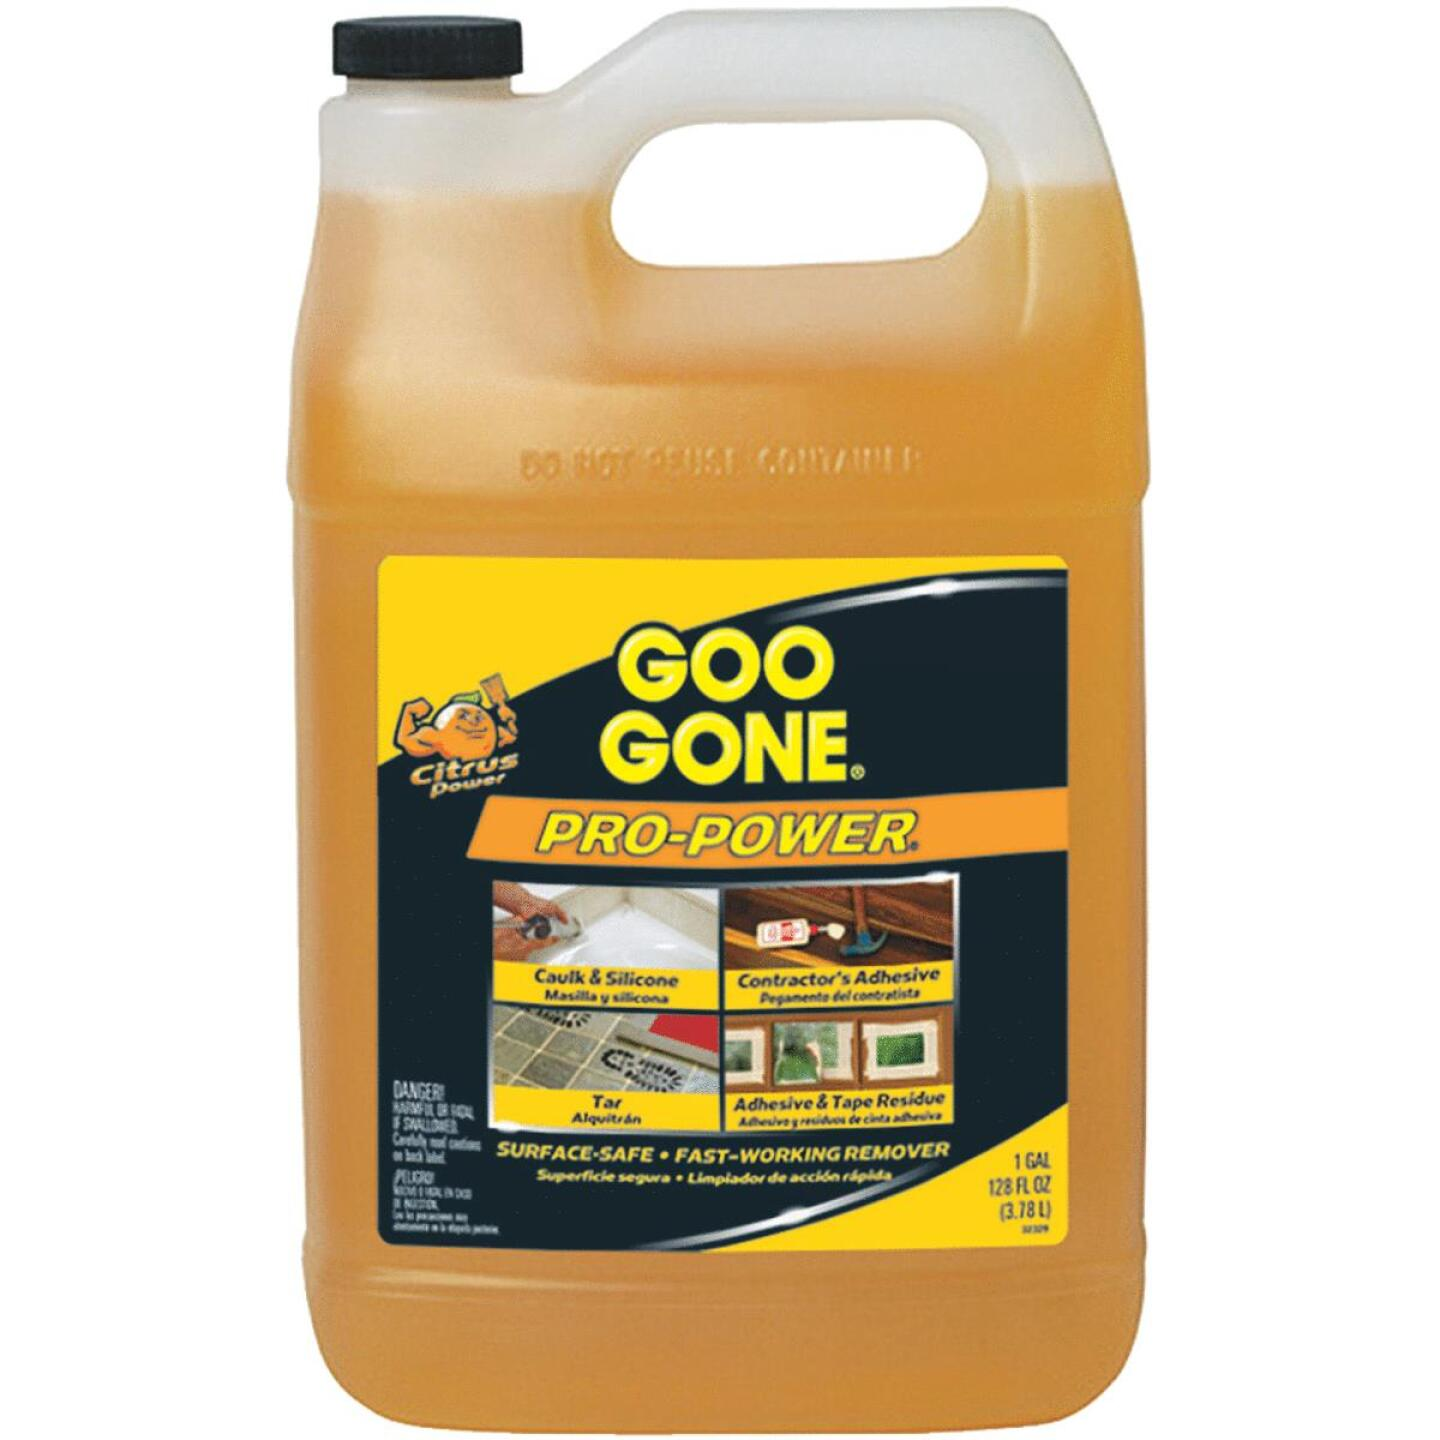 Goo Gone 1 Gal. Pro-Power Adhesive Remover Image 159